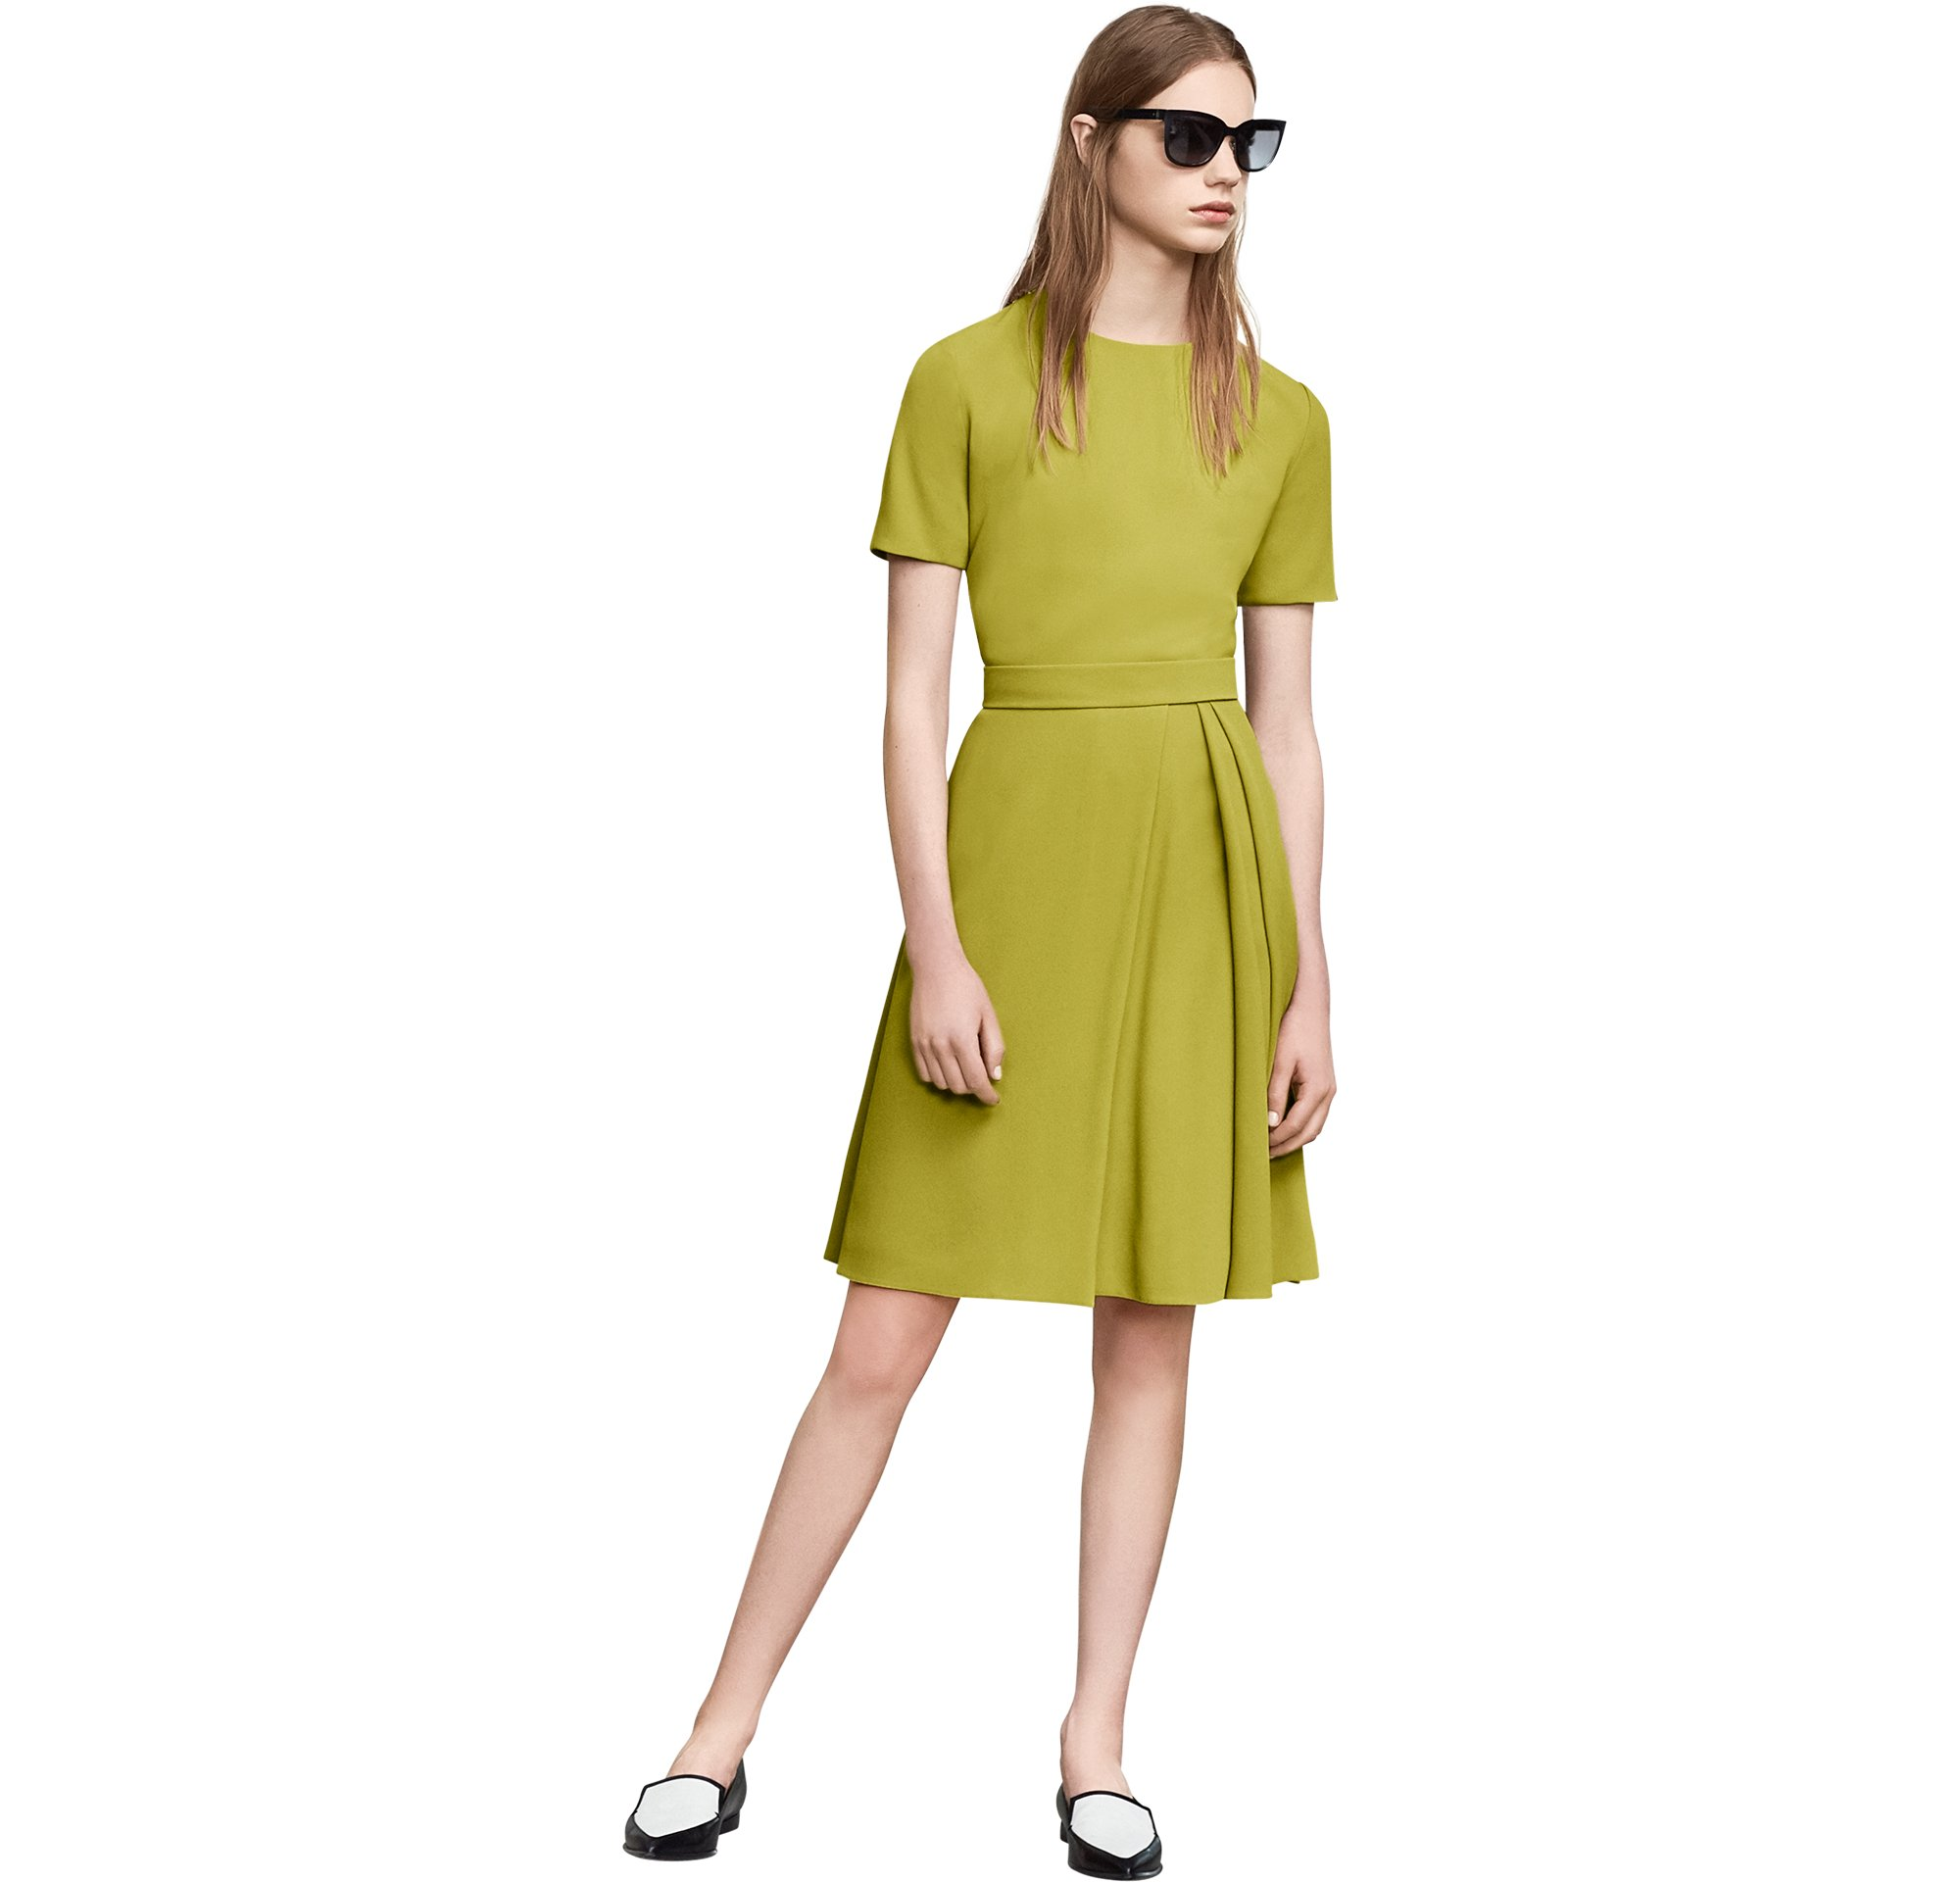 Green dress and shoes by BOSS